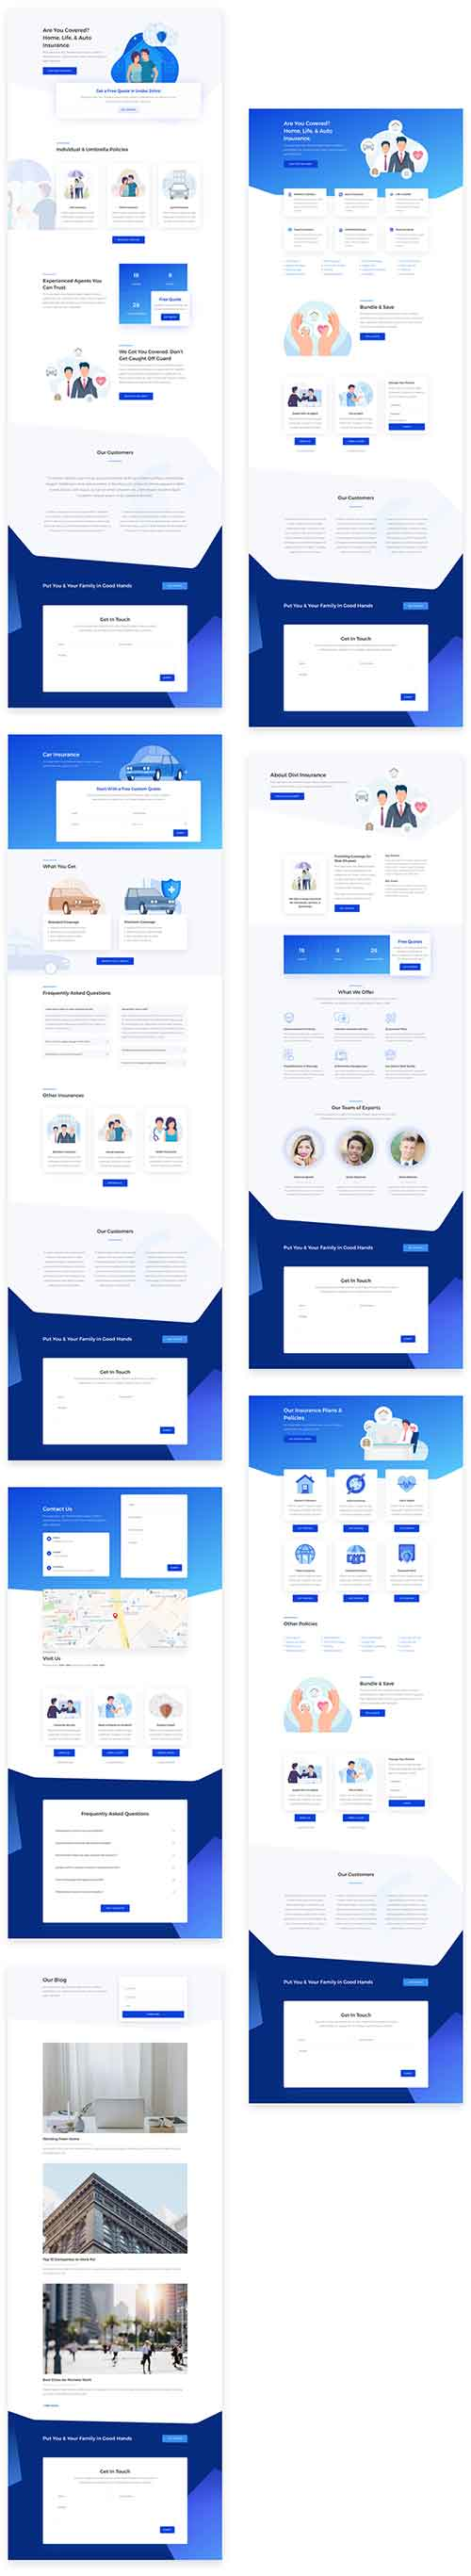 divi insurance layout pack